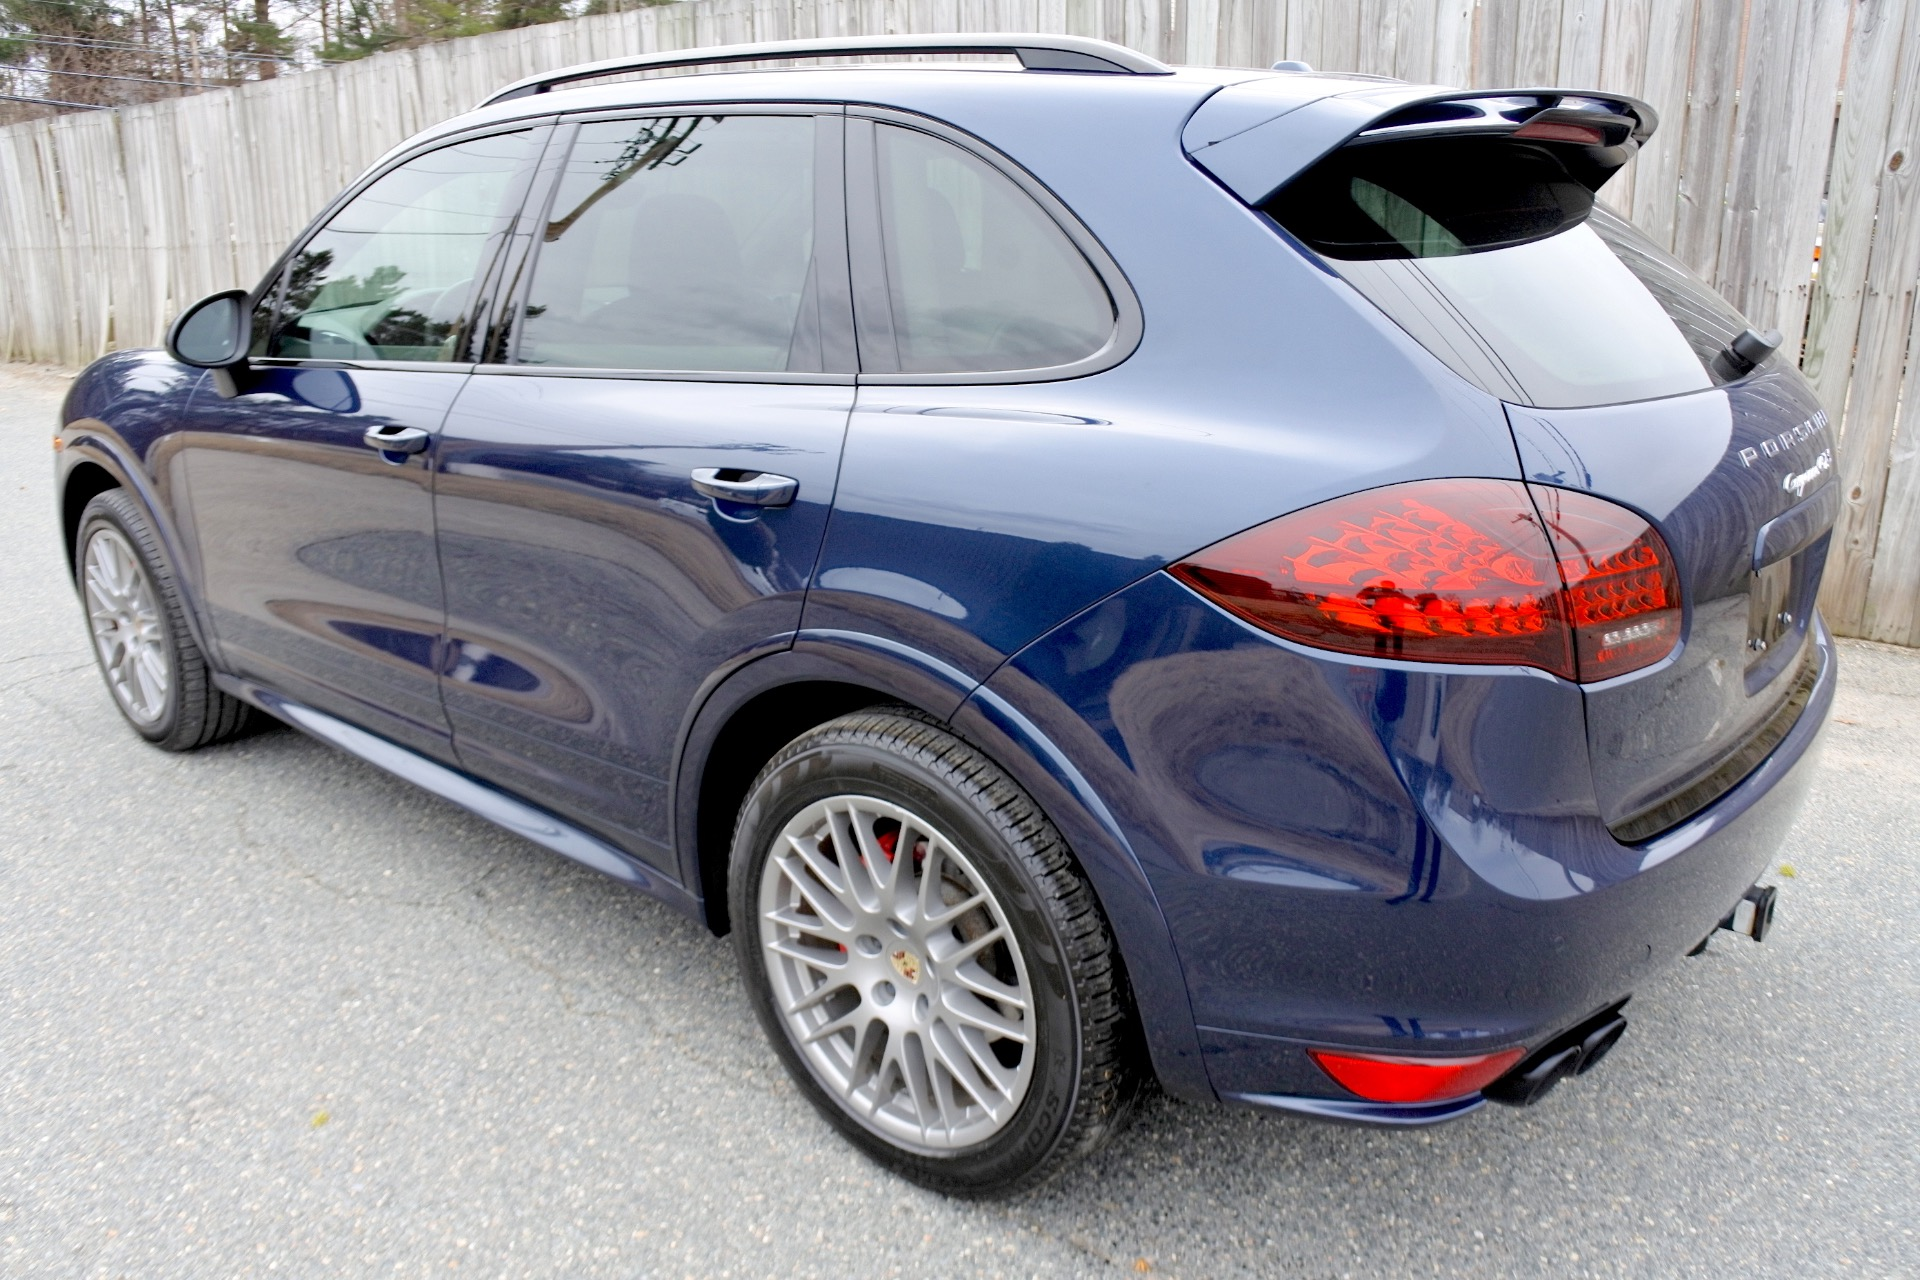 Used 2013 Porsche Cayenne GTS AWD Used 2013 Porsche Cayenne GTS AWD for sale  at Metro West Motorcars LLC in Shrewsbury MA 3